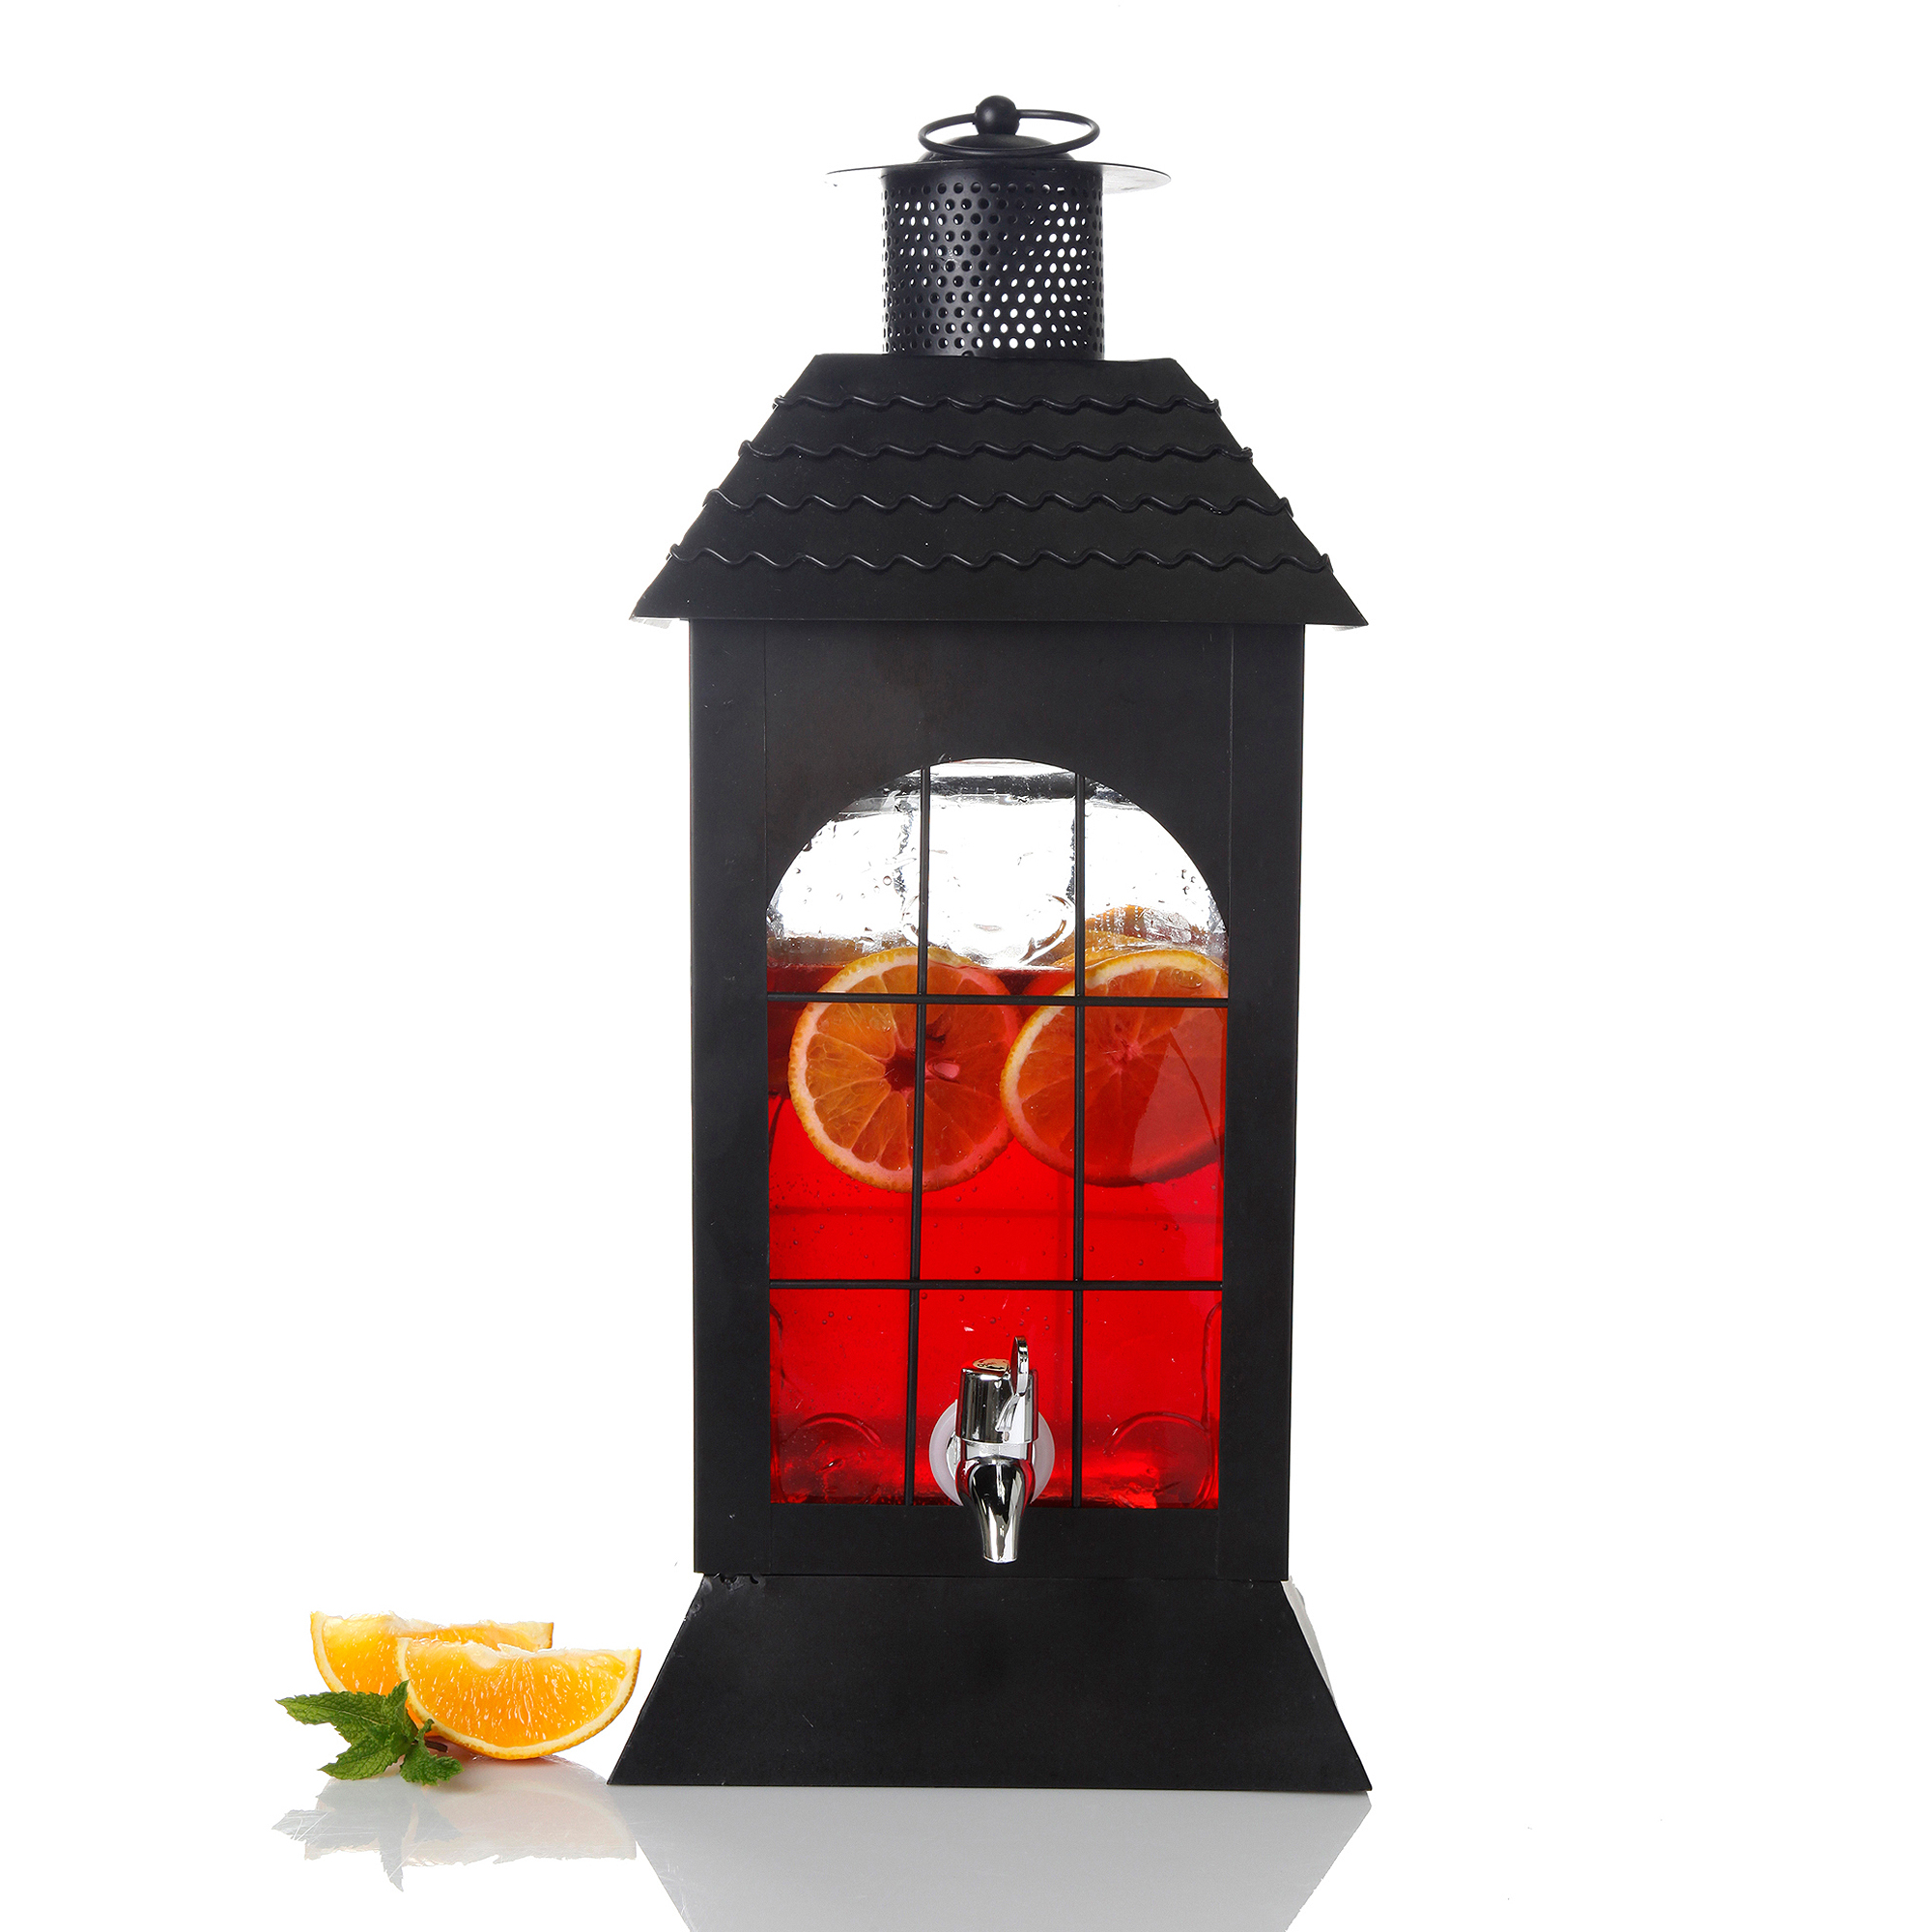 Gibson Home Peoria Glass Drink Dispenser with Black House Shape Metal Rack, 1.32 Gallons, Glass